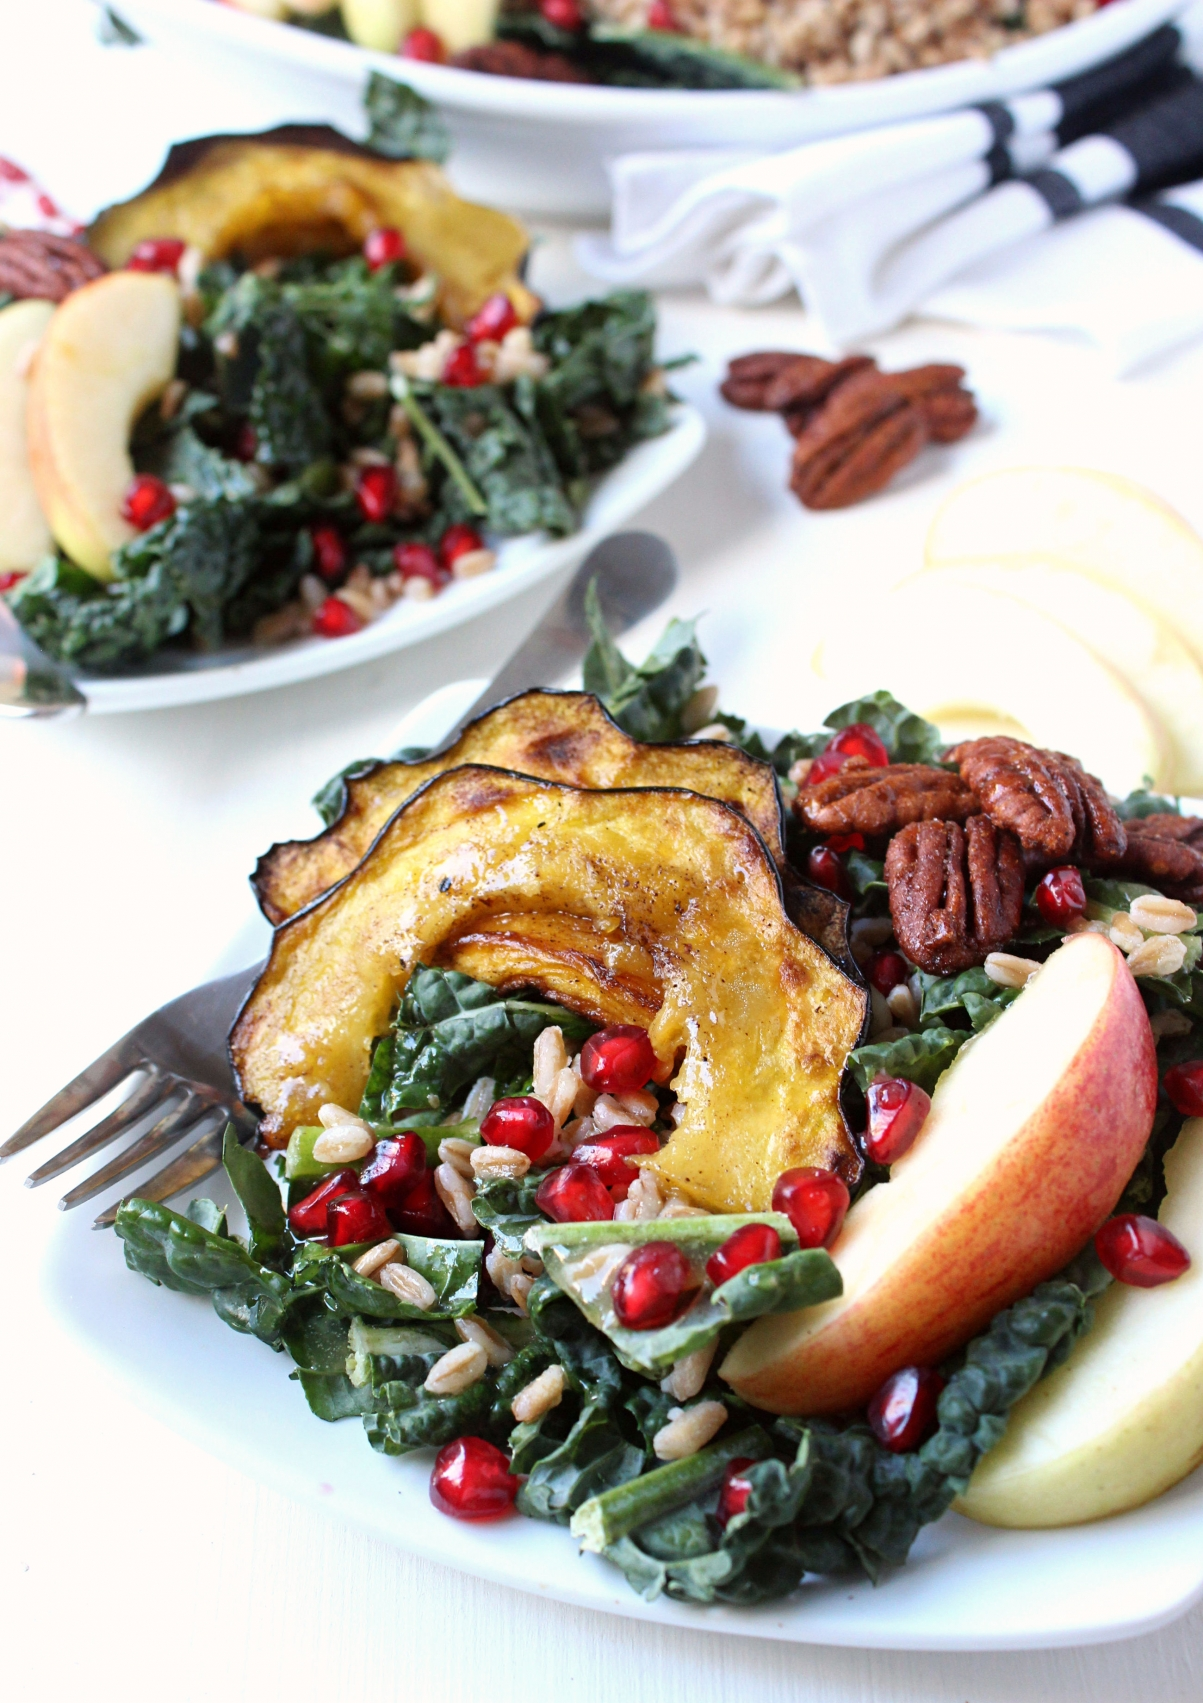 Fall Harvest Kale & Farro Salad w/ Roasted Acorn Squash, Apples, Candied Pecans, Pomegranate Seeds, & Sweet Apple Cider Vinaigrette